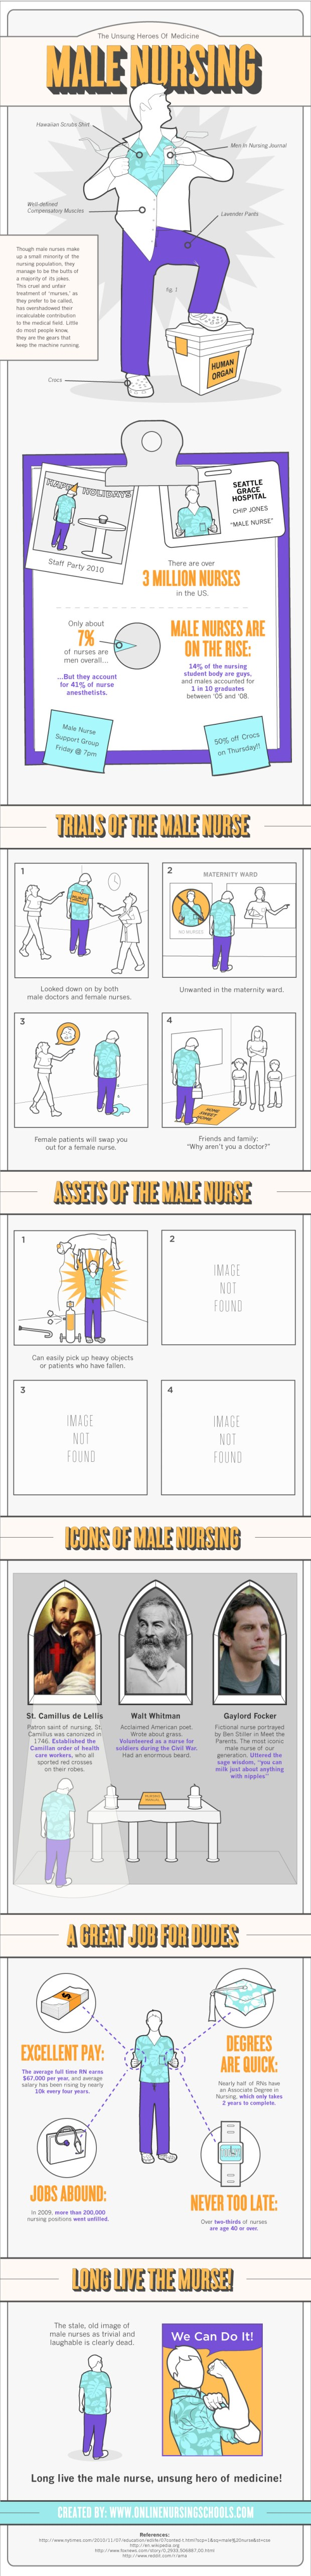 Male Nurses The unsung heroes of medicine: Male nurses [INFOGRAPHIC]